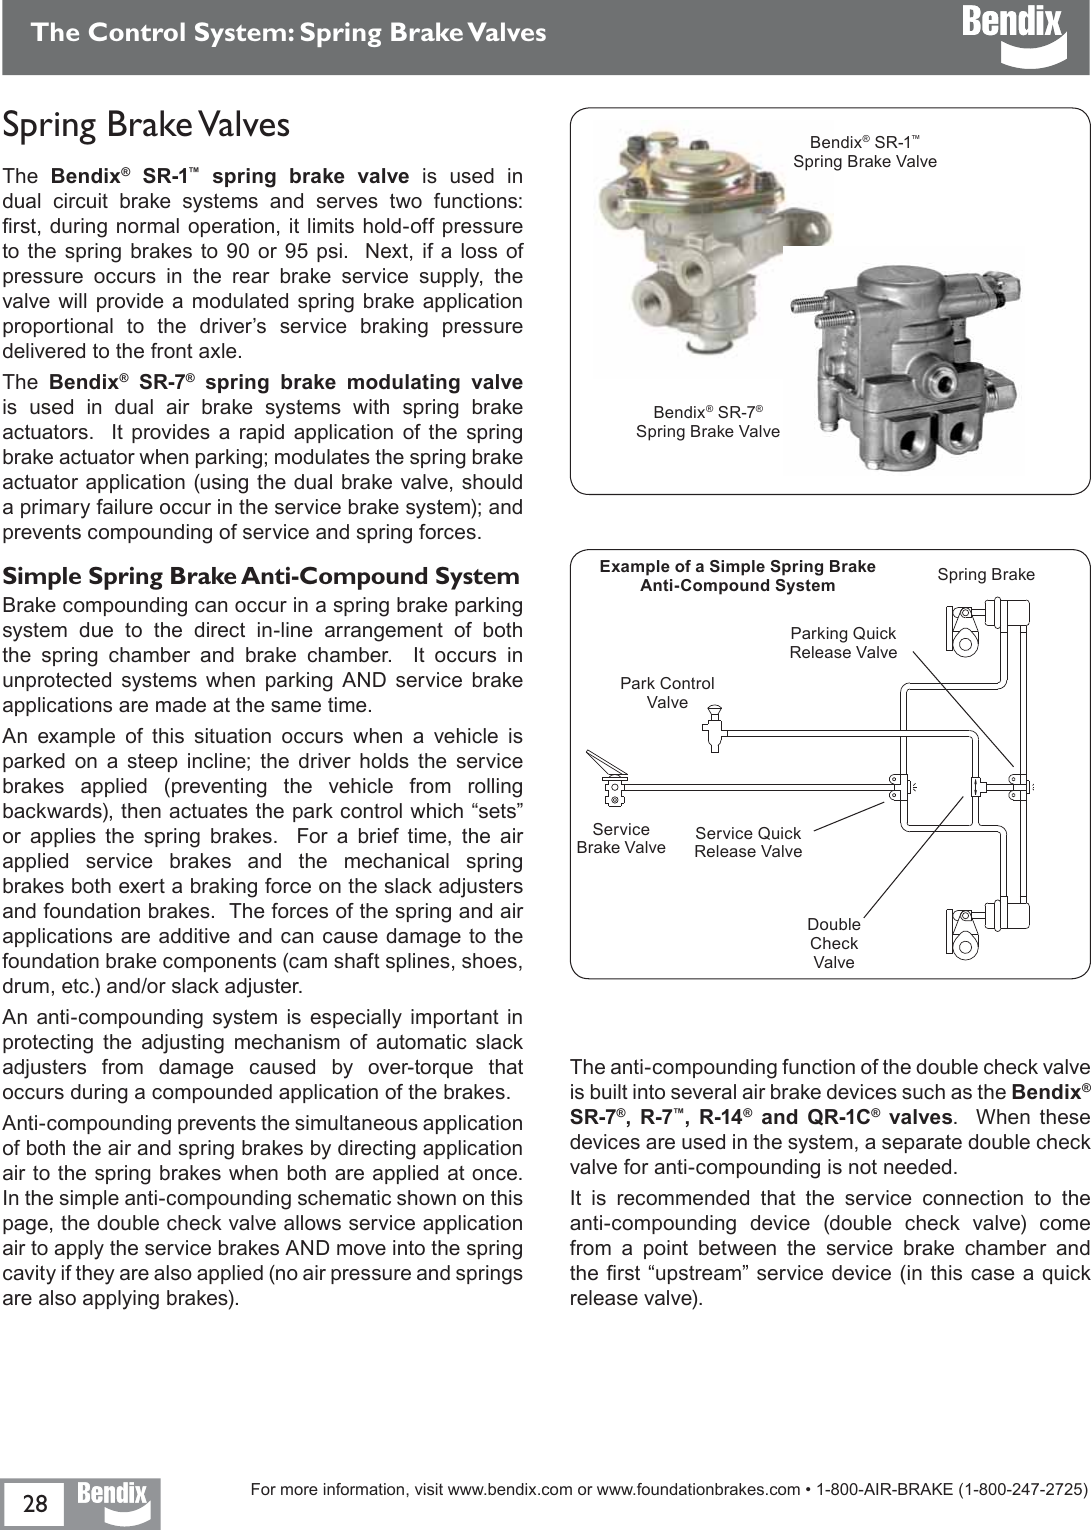 Bendix Bw5057 Users Manual